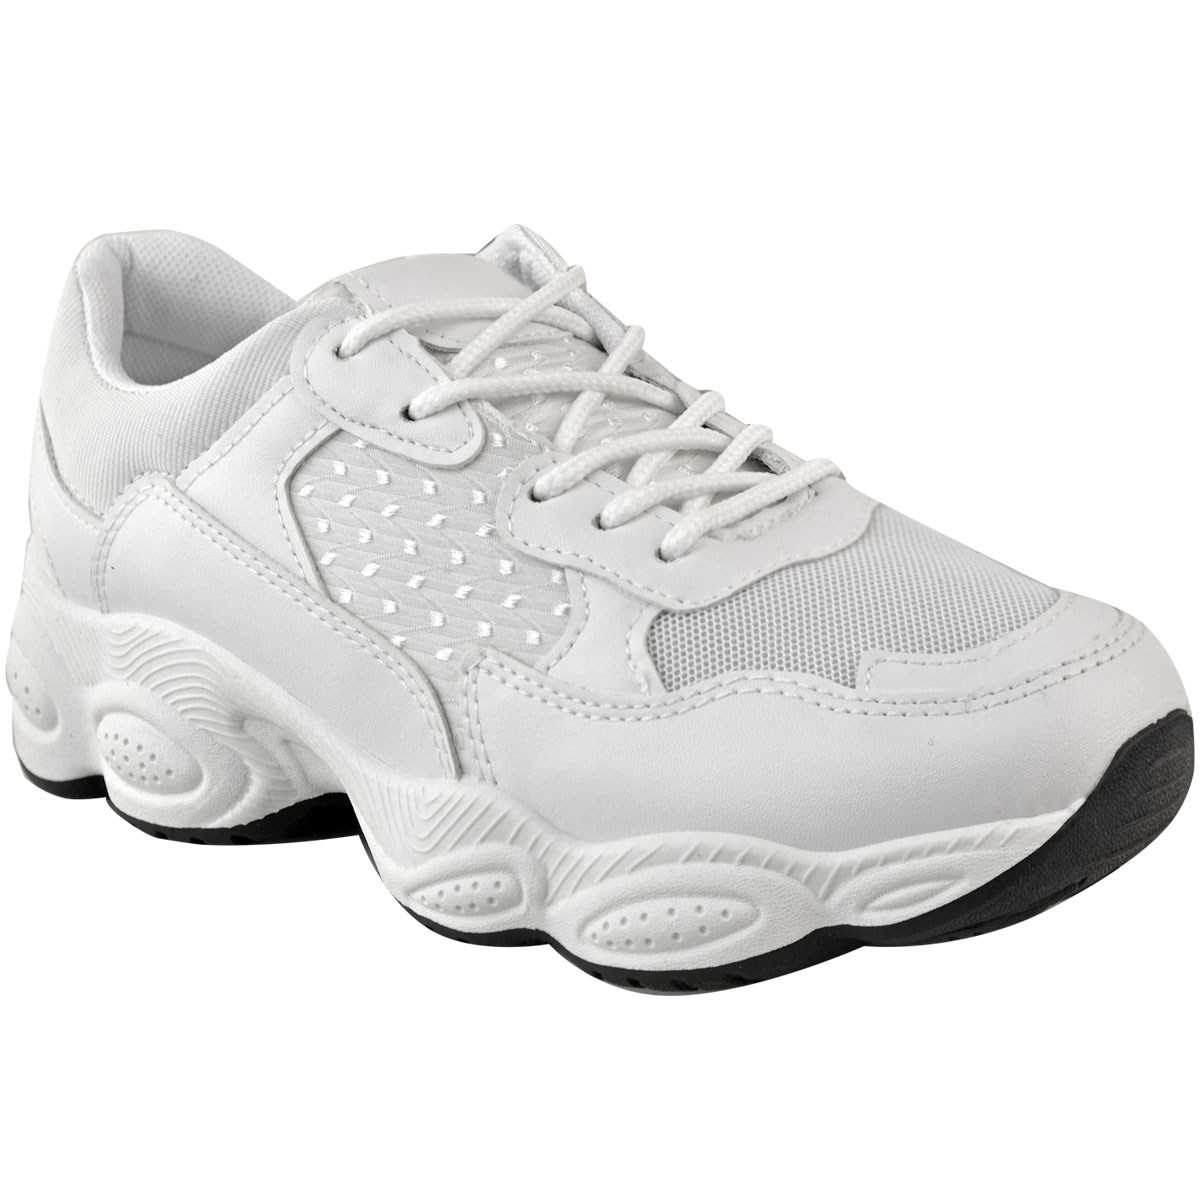 Zu Runners Shoes Details New Designer Sneakers Ladies Size Bali Womens Dad Trainers Chunky eWCBoxrd